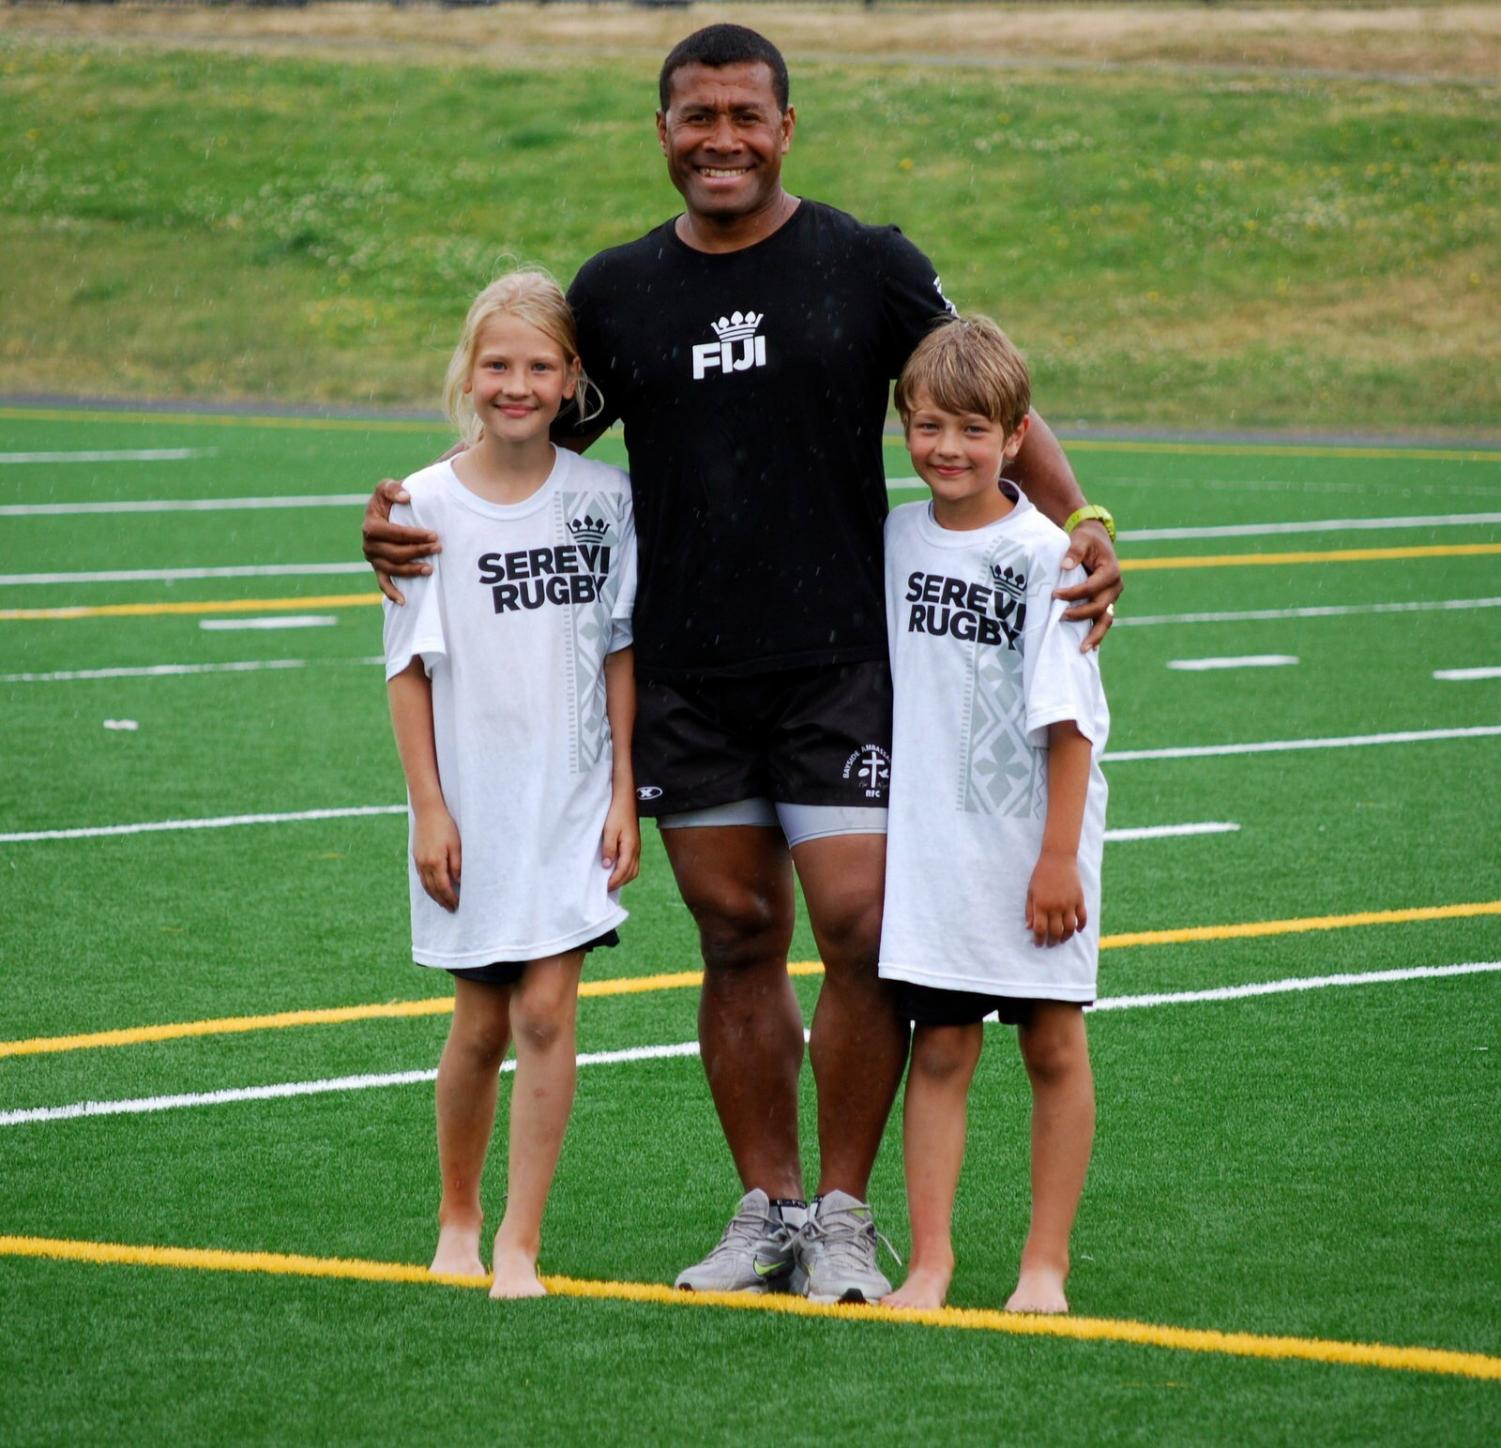 Chloe O'Meara and her younger brother, Kieran, posing with a Serevi Rugby player.